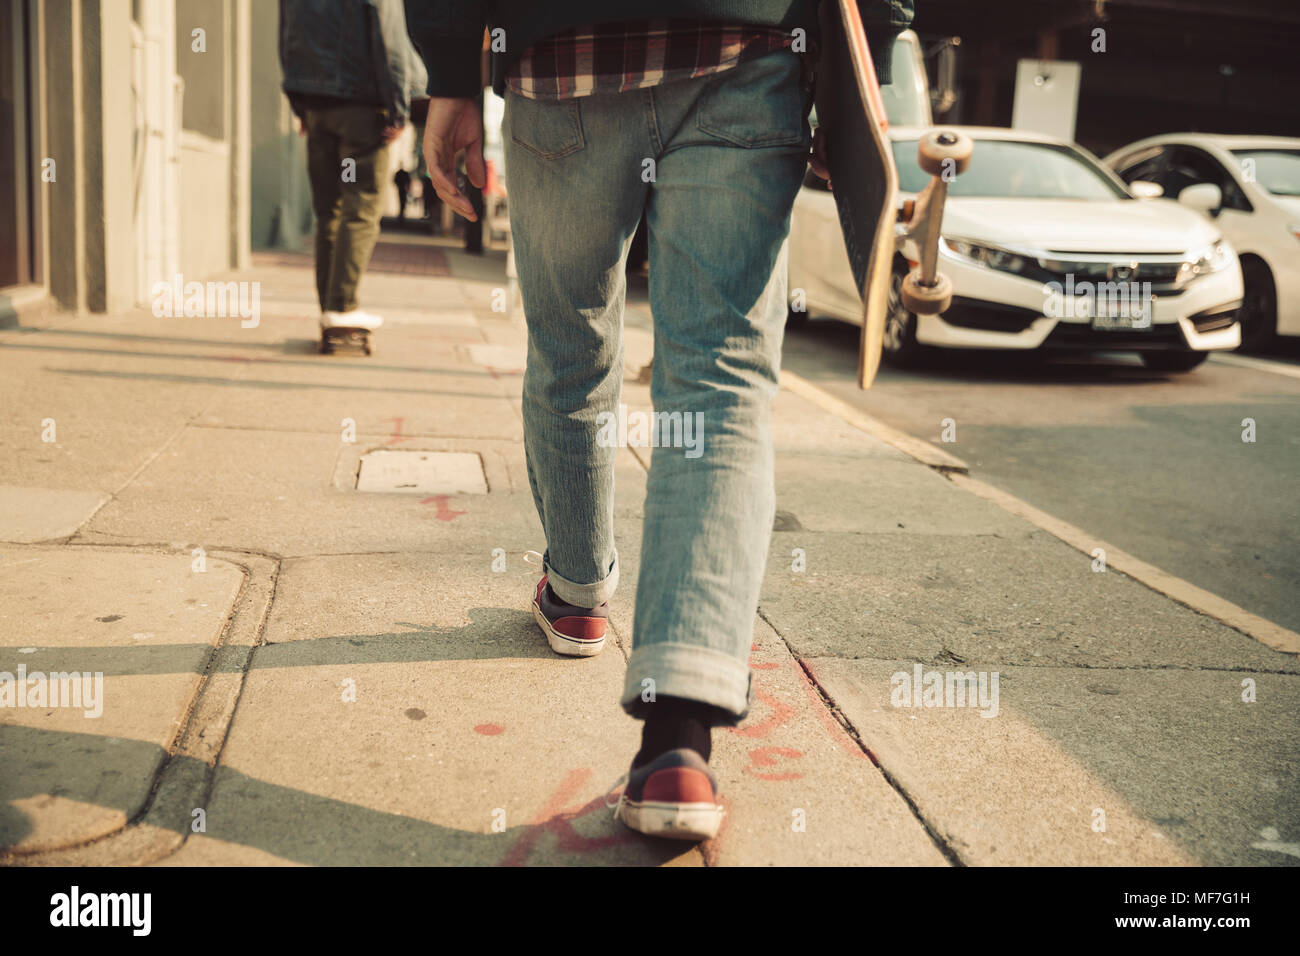 Low section of man walking on sidewalk with skateboard - Stock Image